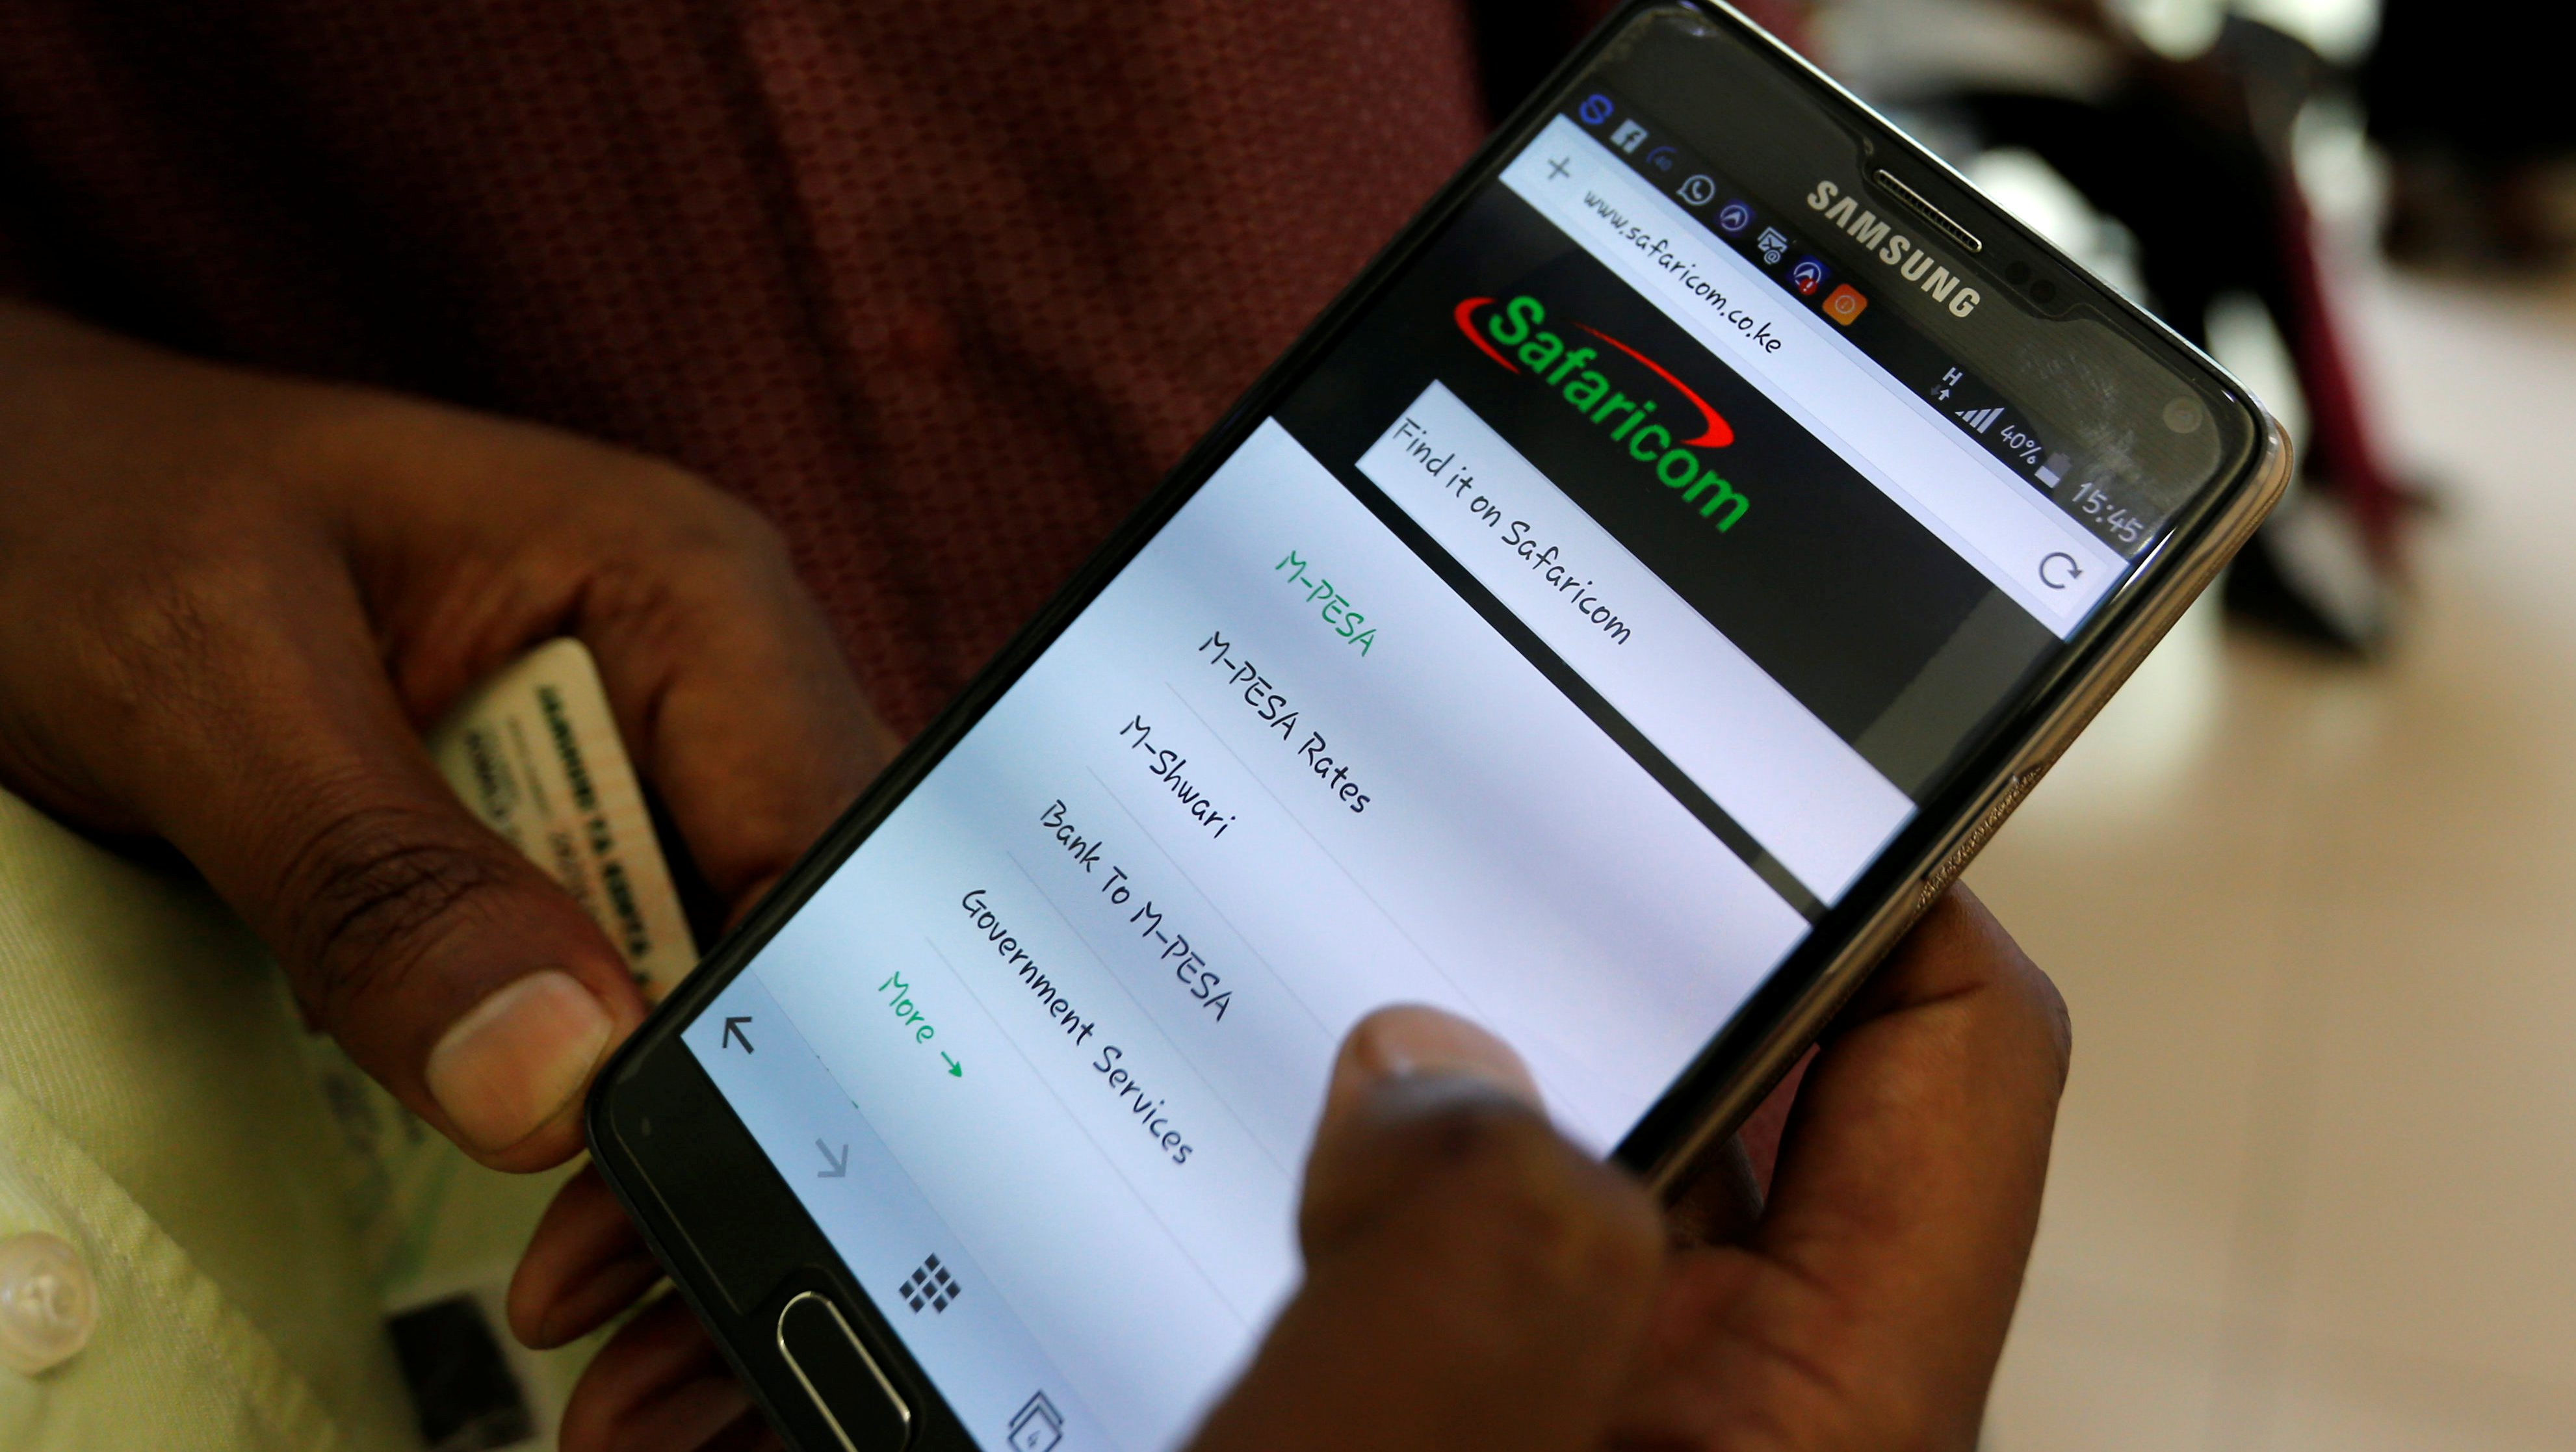 An employee assists a customer to set-up M-Pesa money transfer servive on his handset inside a mobile phone care centre operated by Kenyan's telecom operator Safaricom; in the central business district of Kenya's capital Nairobi, May 11, 2016. REUTERS/Thomas Mukoya - RTX2DU5V